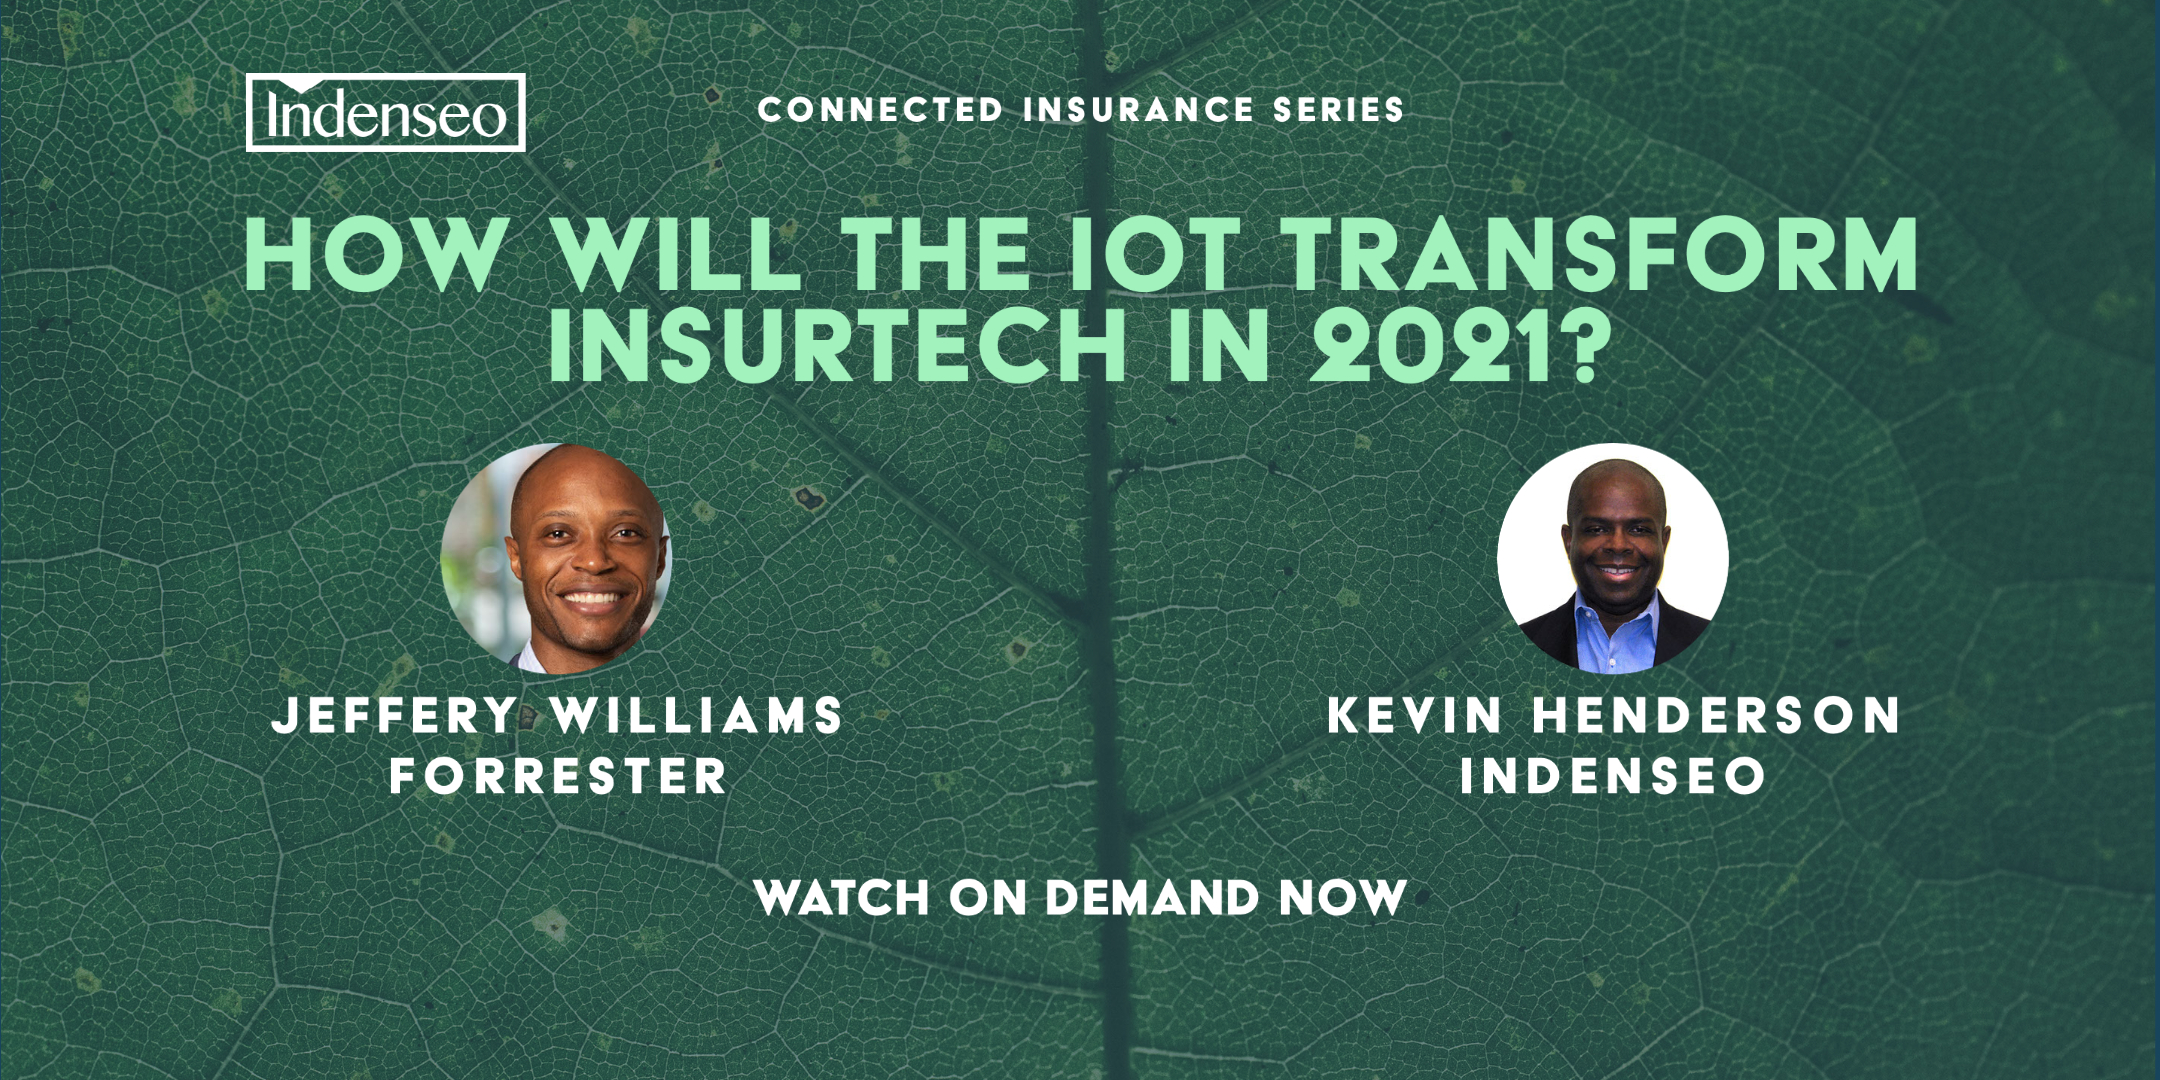 How will the IoT transform insurance